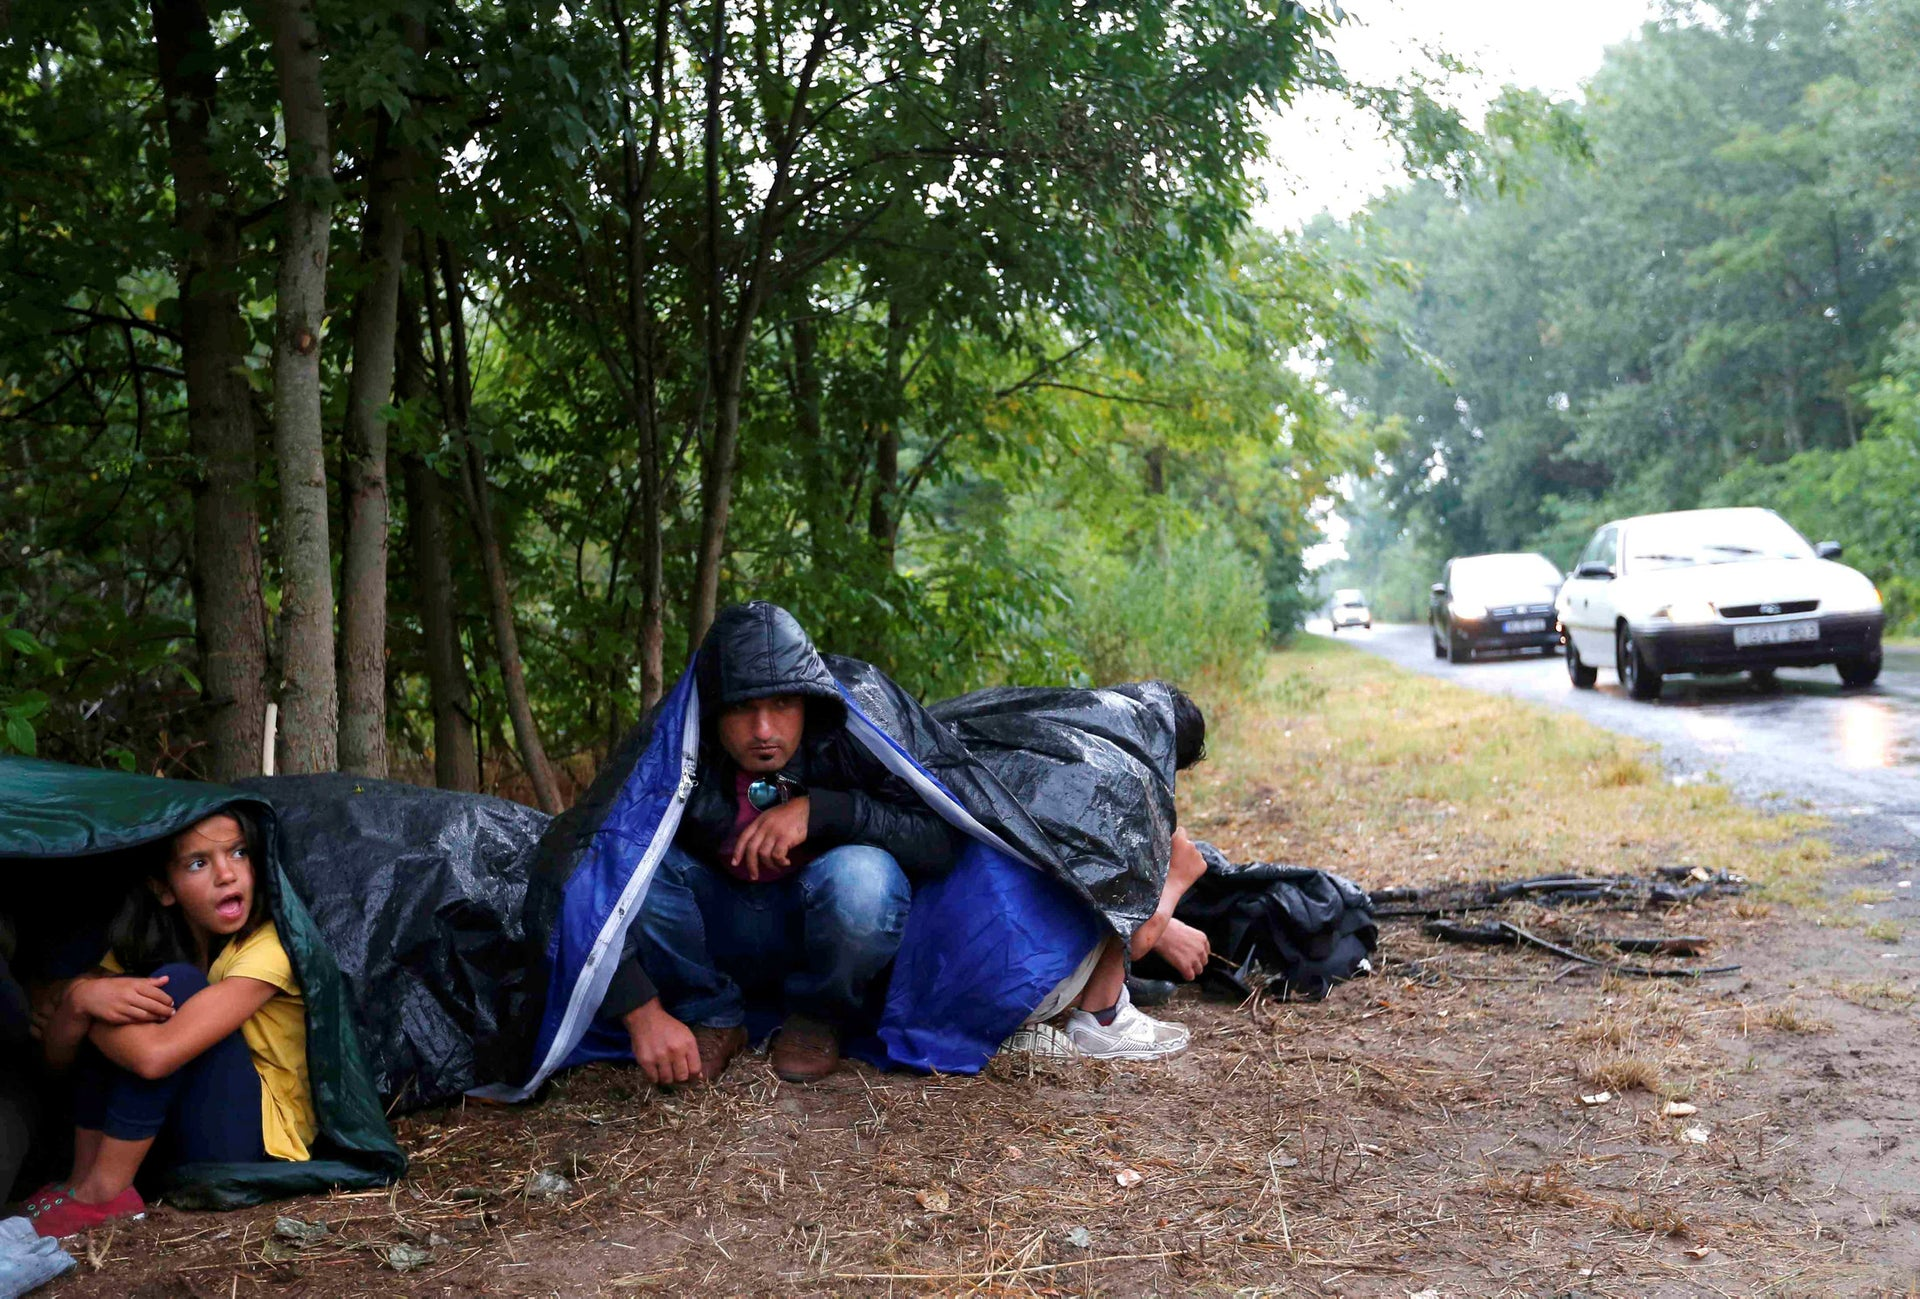 Migrants from Syria use sleeping bags to protect themselves from the rain as they rest on the side of a road after crossing the border illegally from Serbia, near Asotthalom, Hungary July 27, 2015.